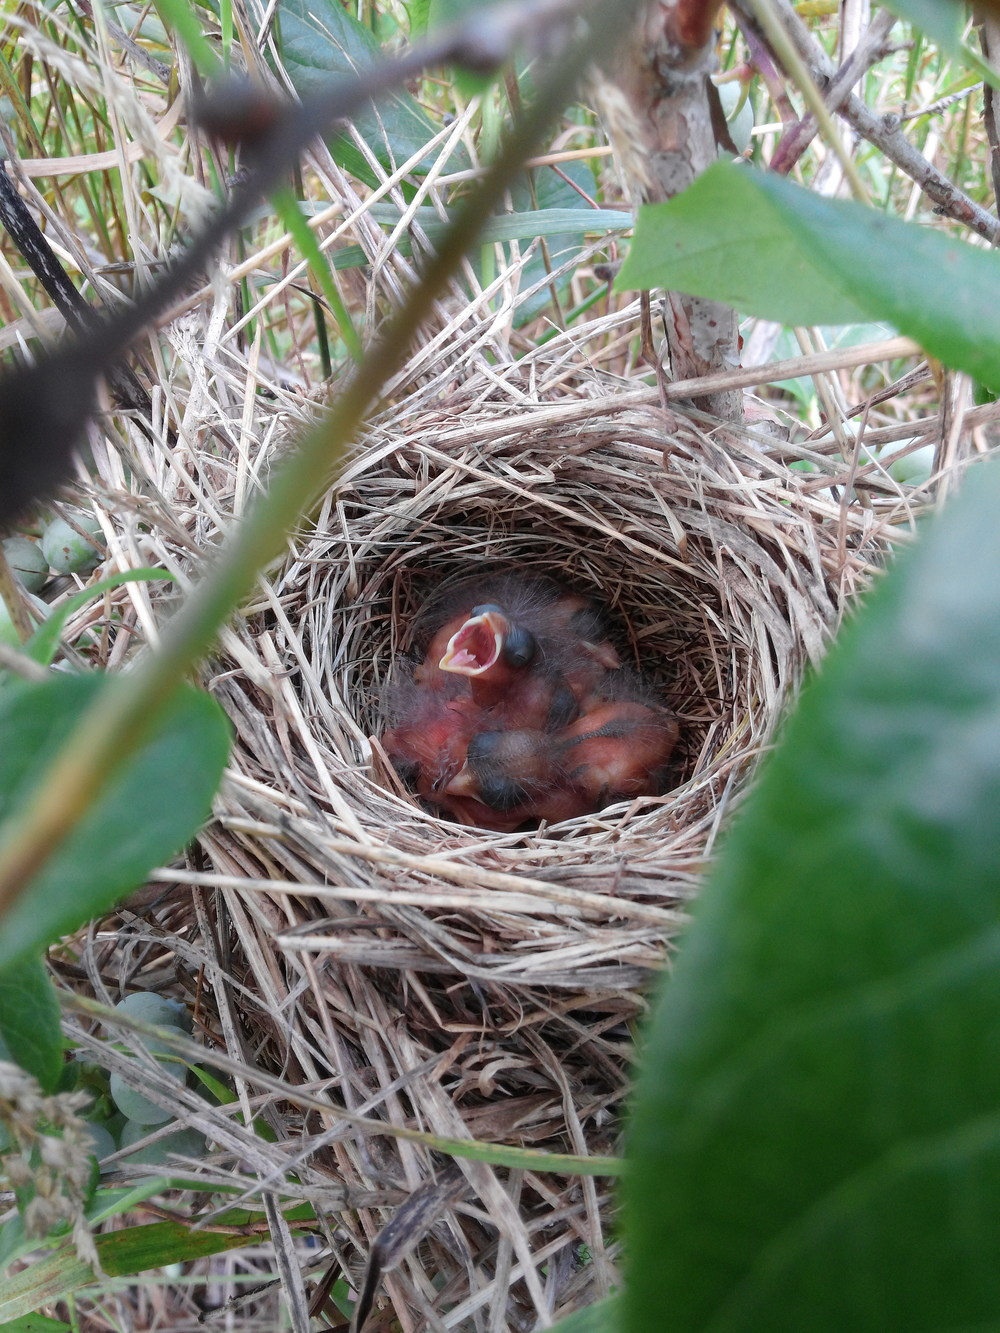 Sparrow Nest. Photo by L. Samson.